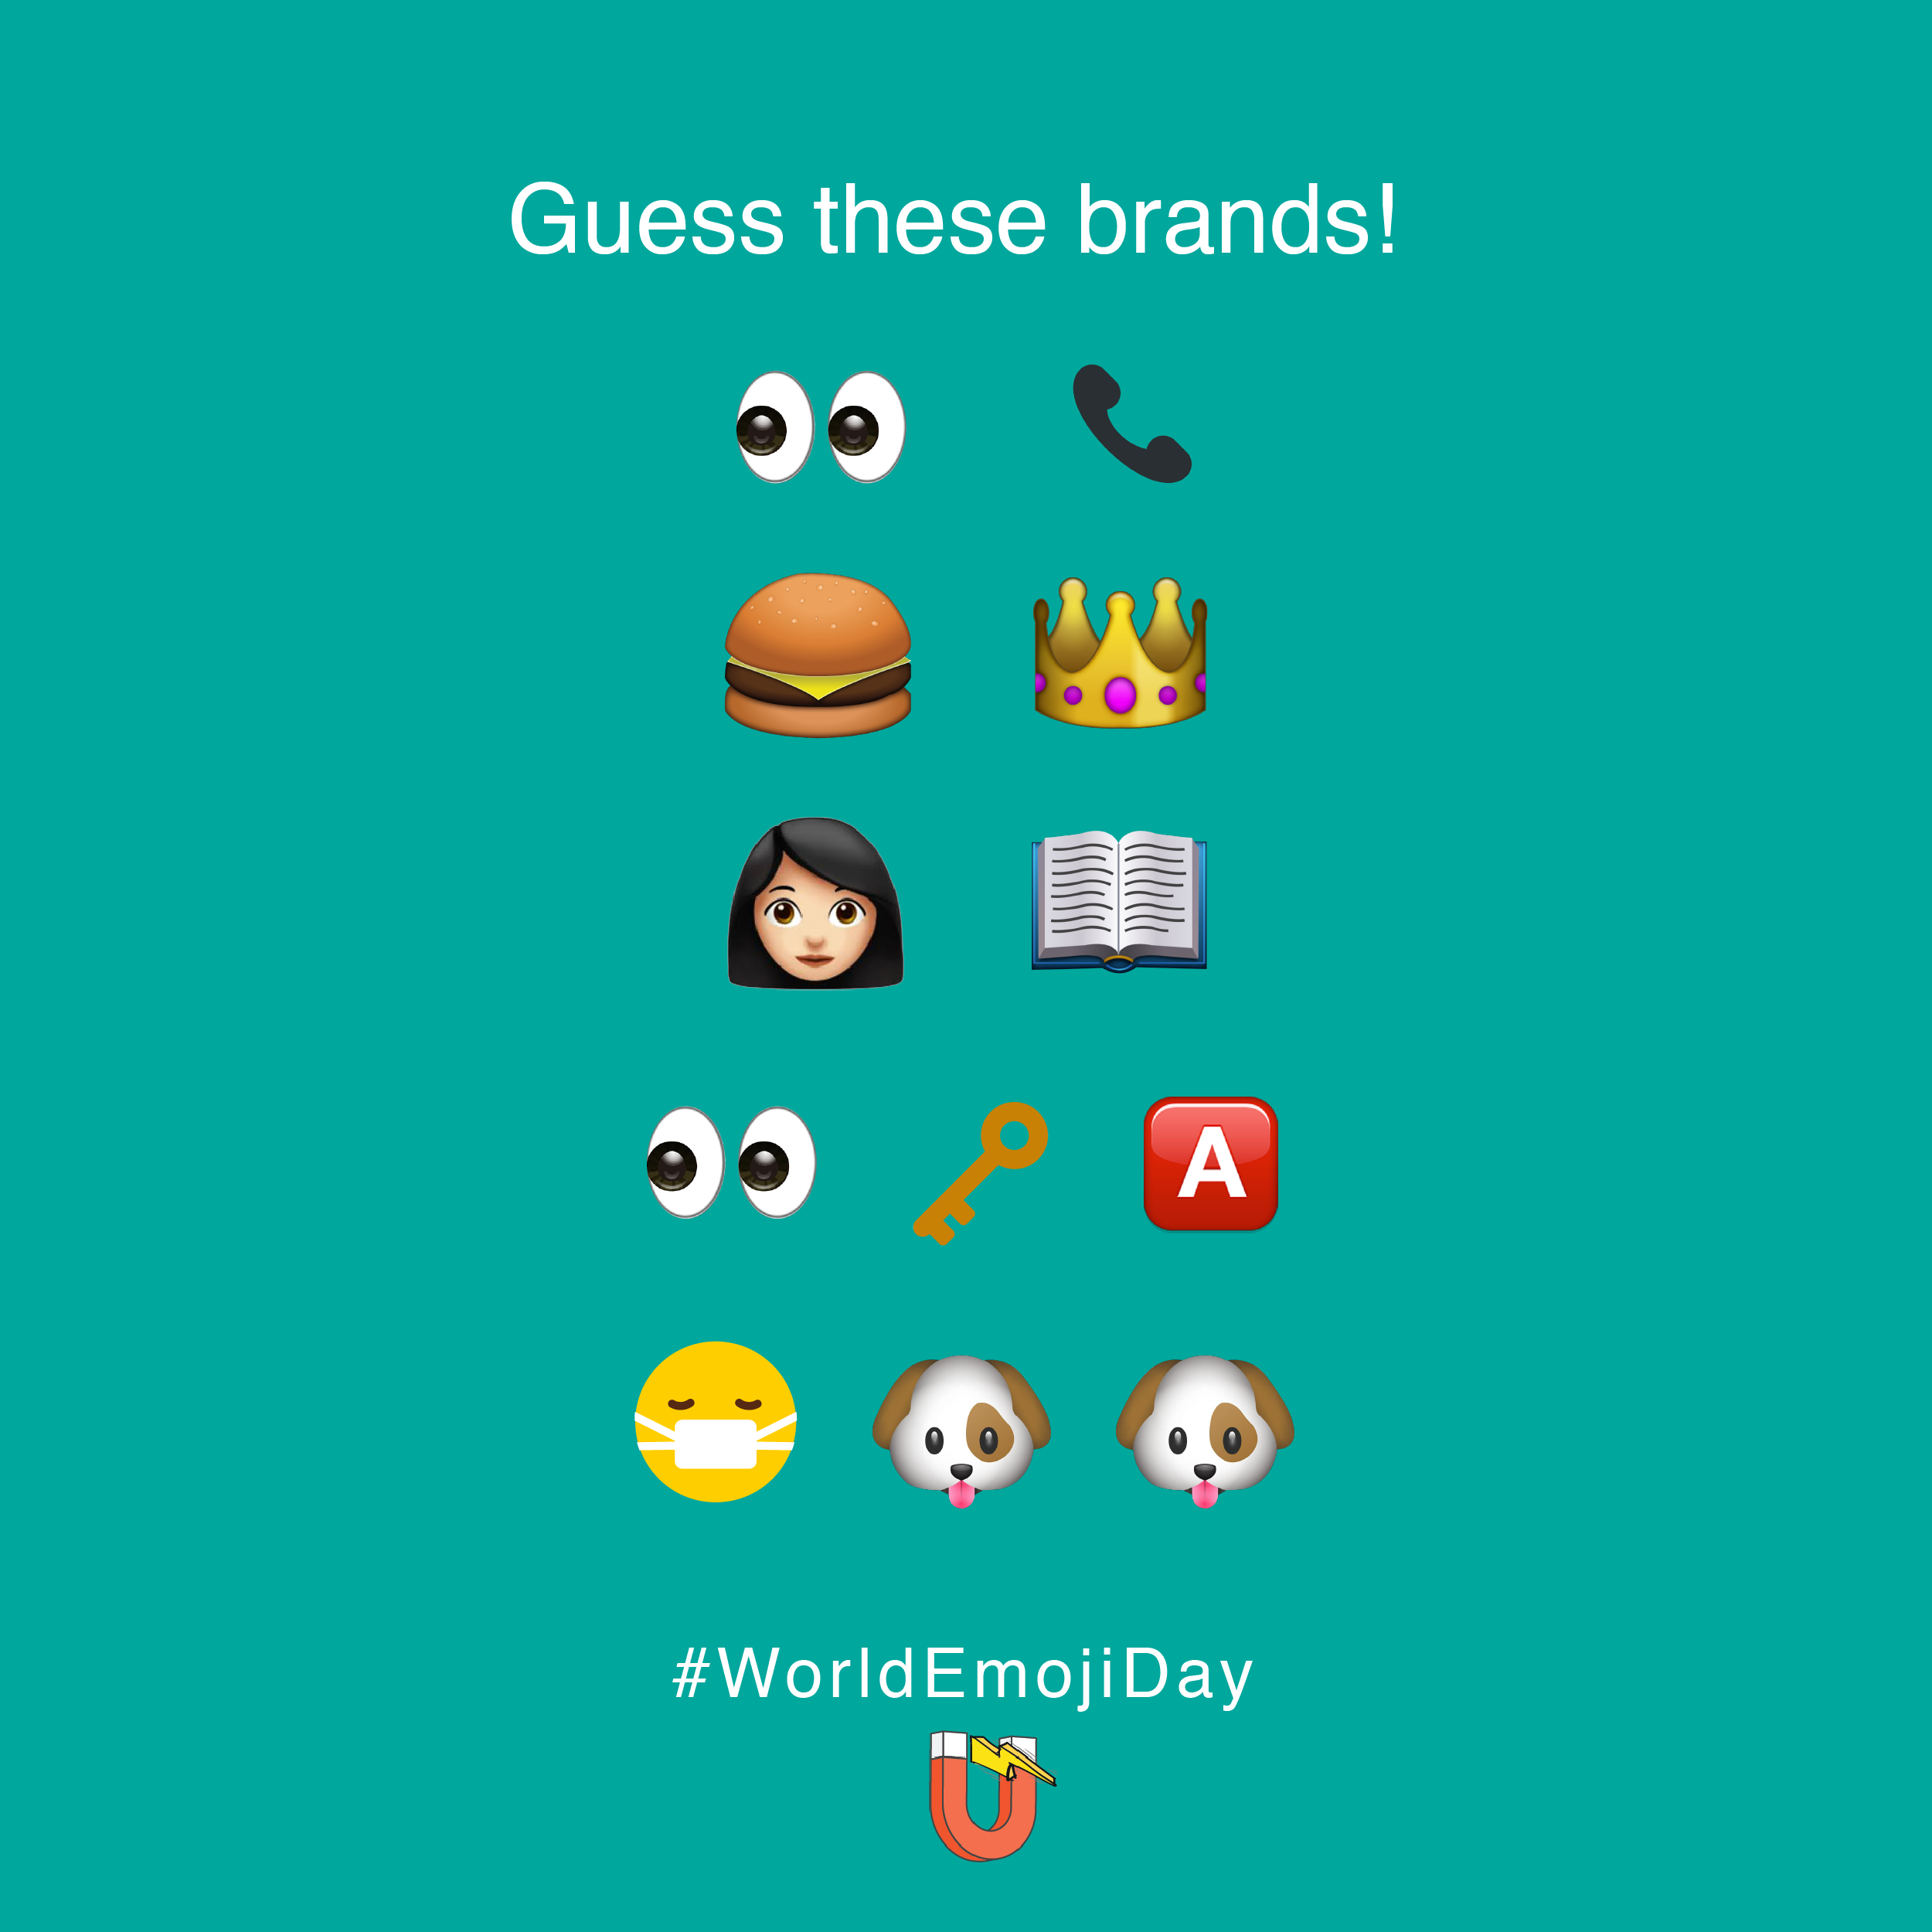 This World Emoji Day We Celebrate Brands That Redefined Marketing Guess The Name Of These Iconic Bran World Emoji Day Social Media Marketing Services Inbound